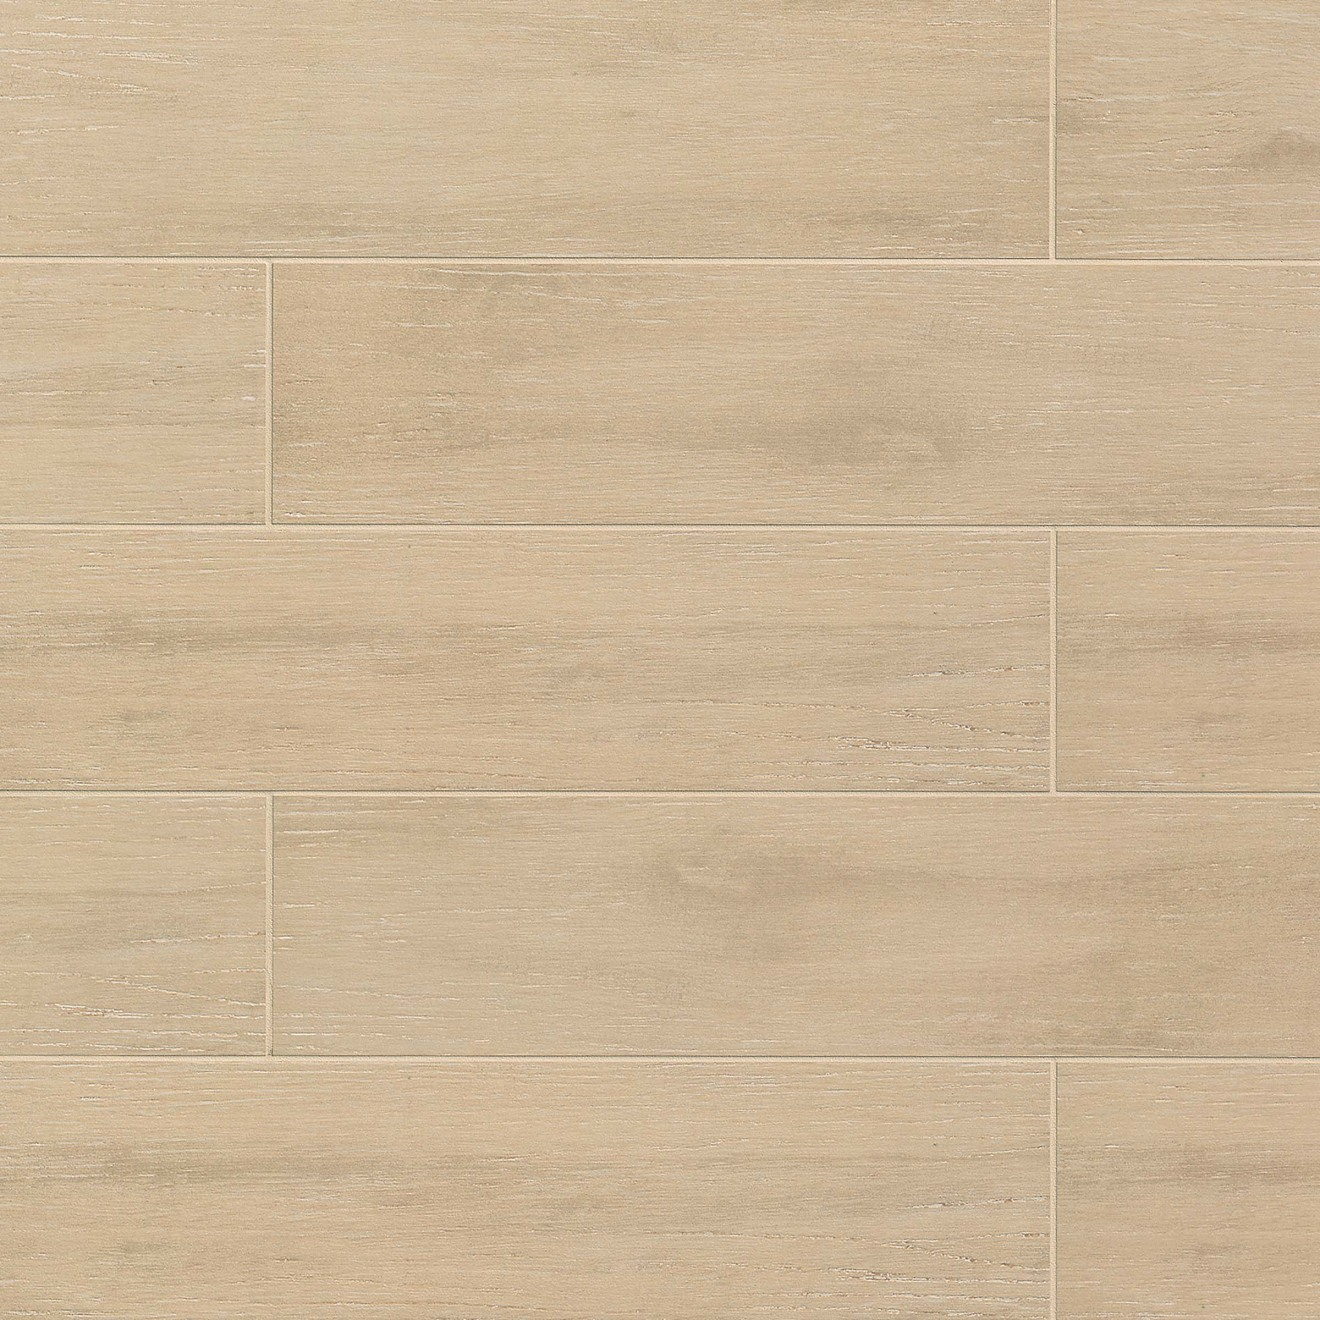 Prestige Collection 6 X 24 Floor Wall Tile In Birch